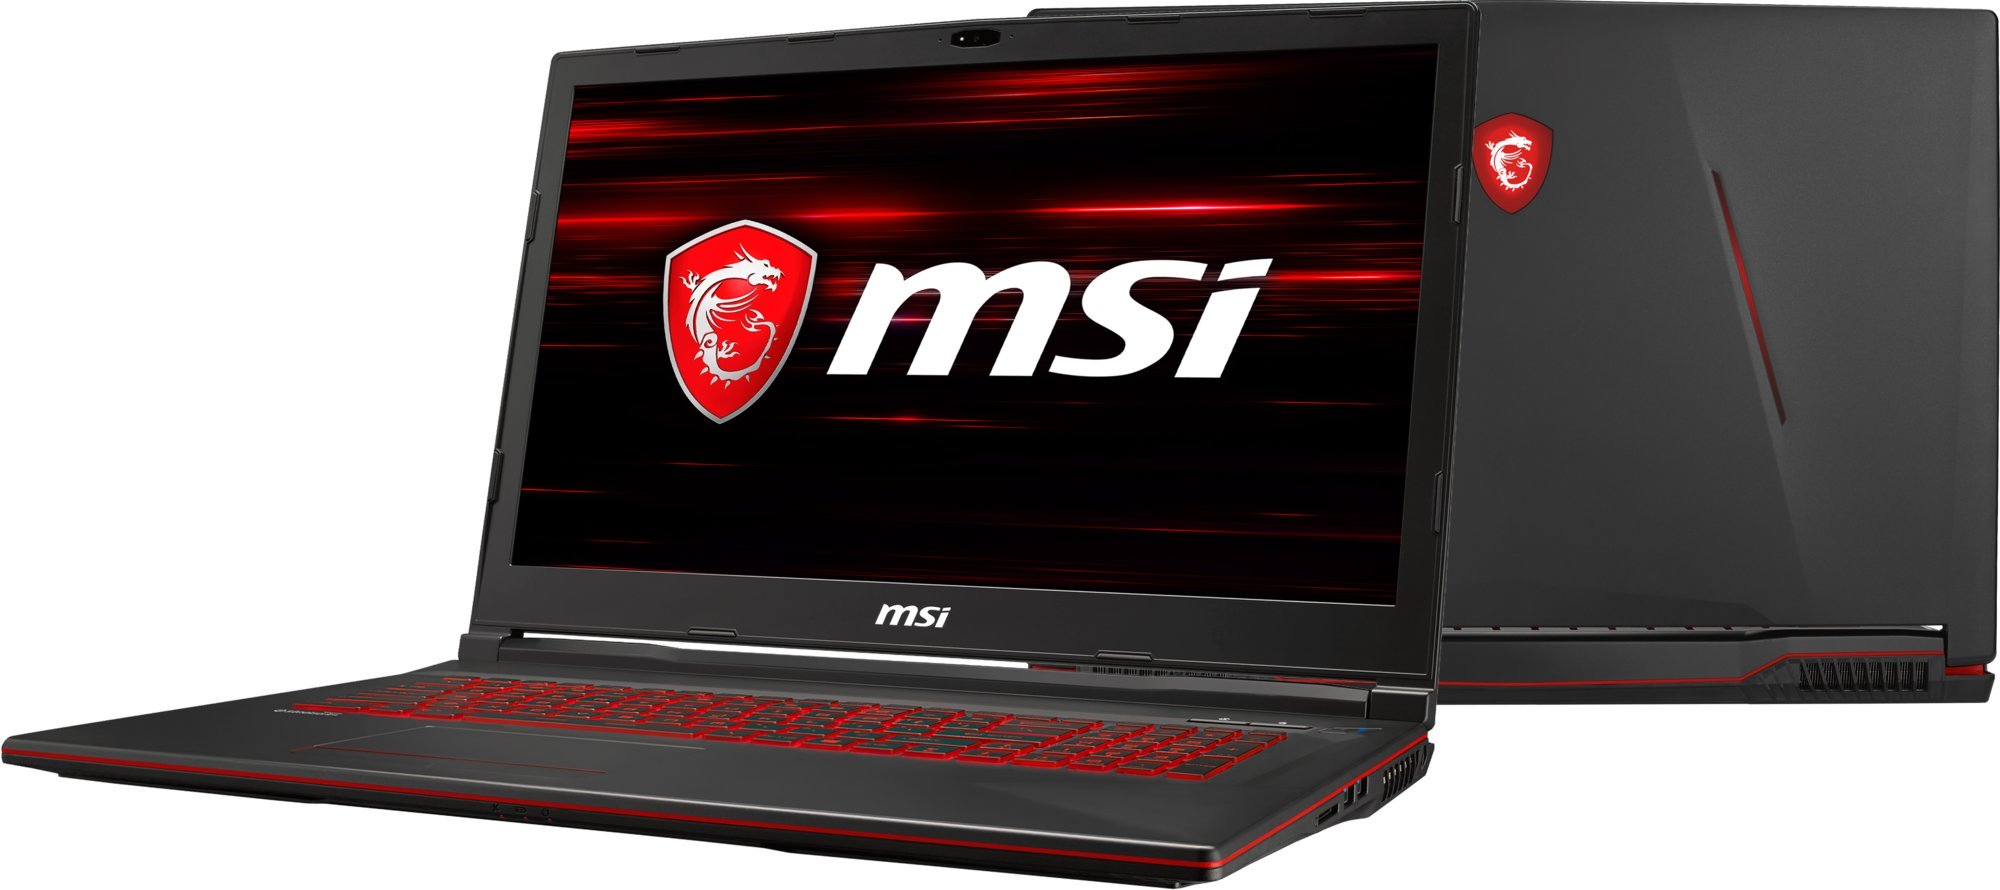 MSI GL73 8SE-064BE